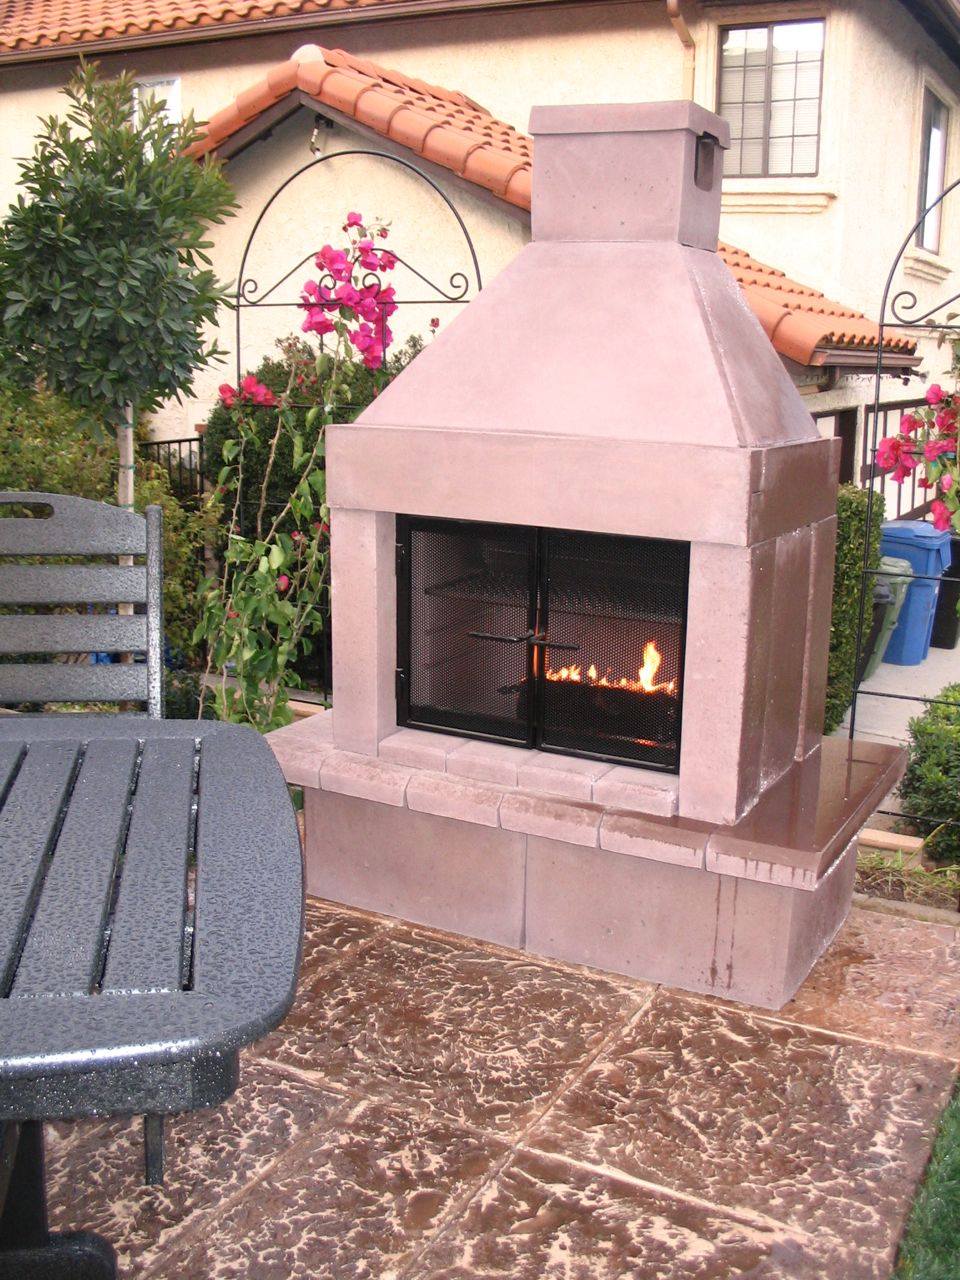 DIY Modular Outdoor Fireplace by Mirage Stone | Eden Makers Blog ...